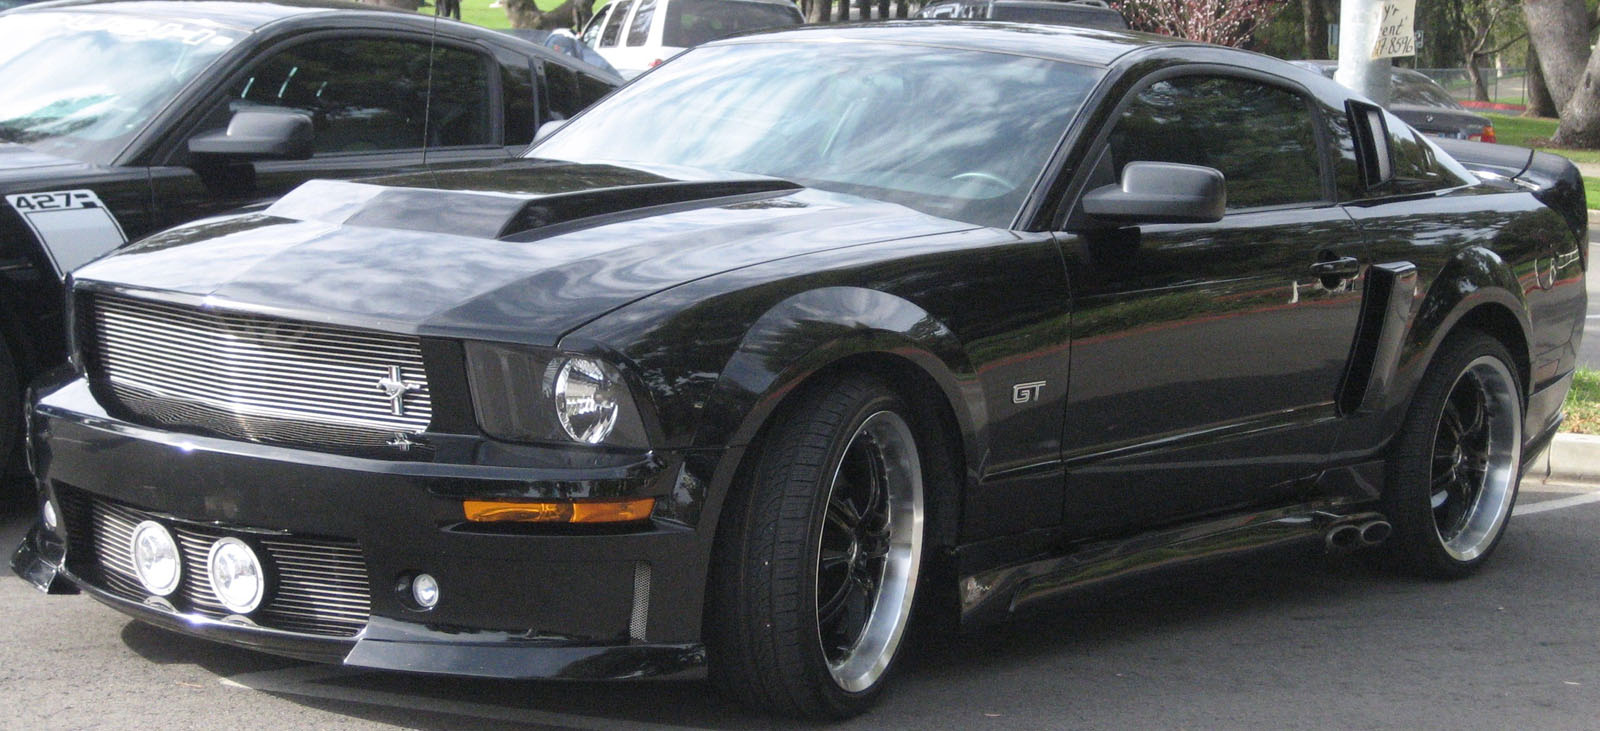 2005 ford mustang for sale west hills california. Cars Review. Best American Auto & Cars Review